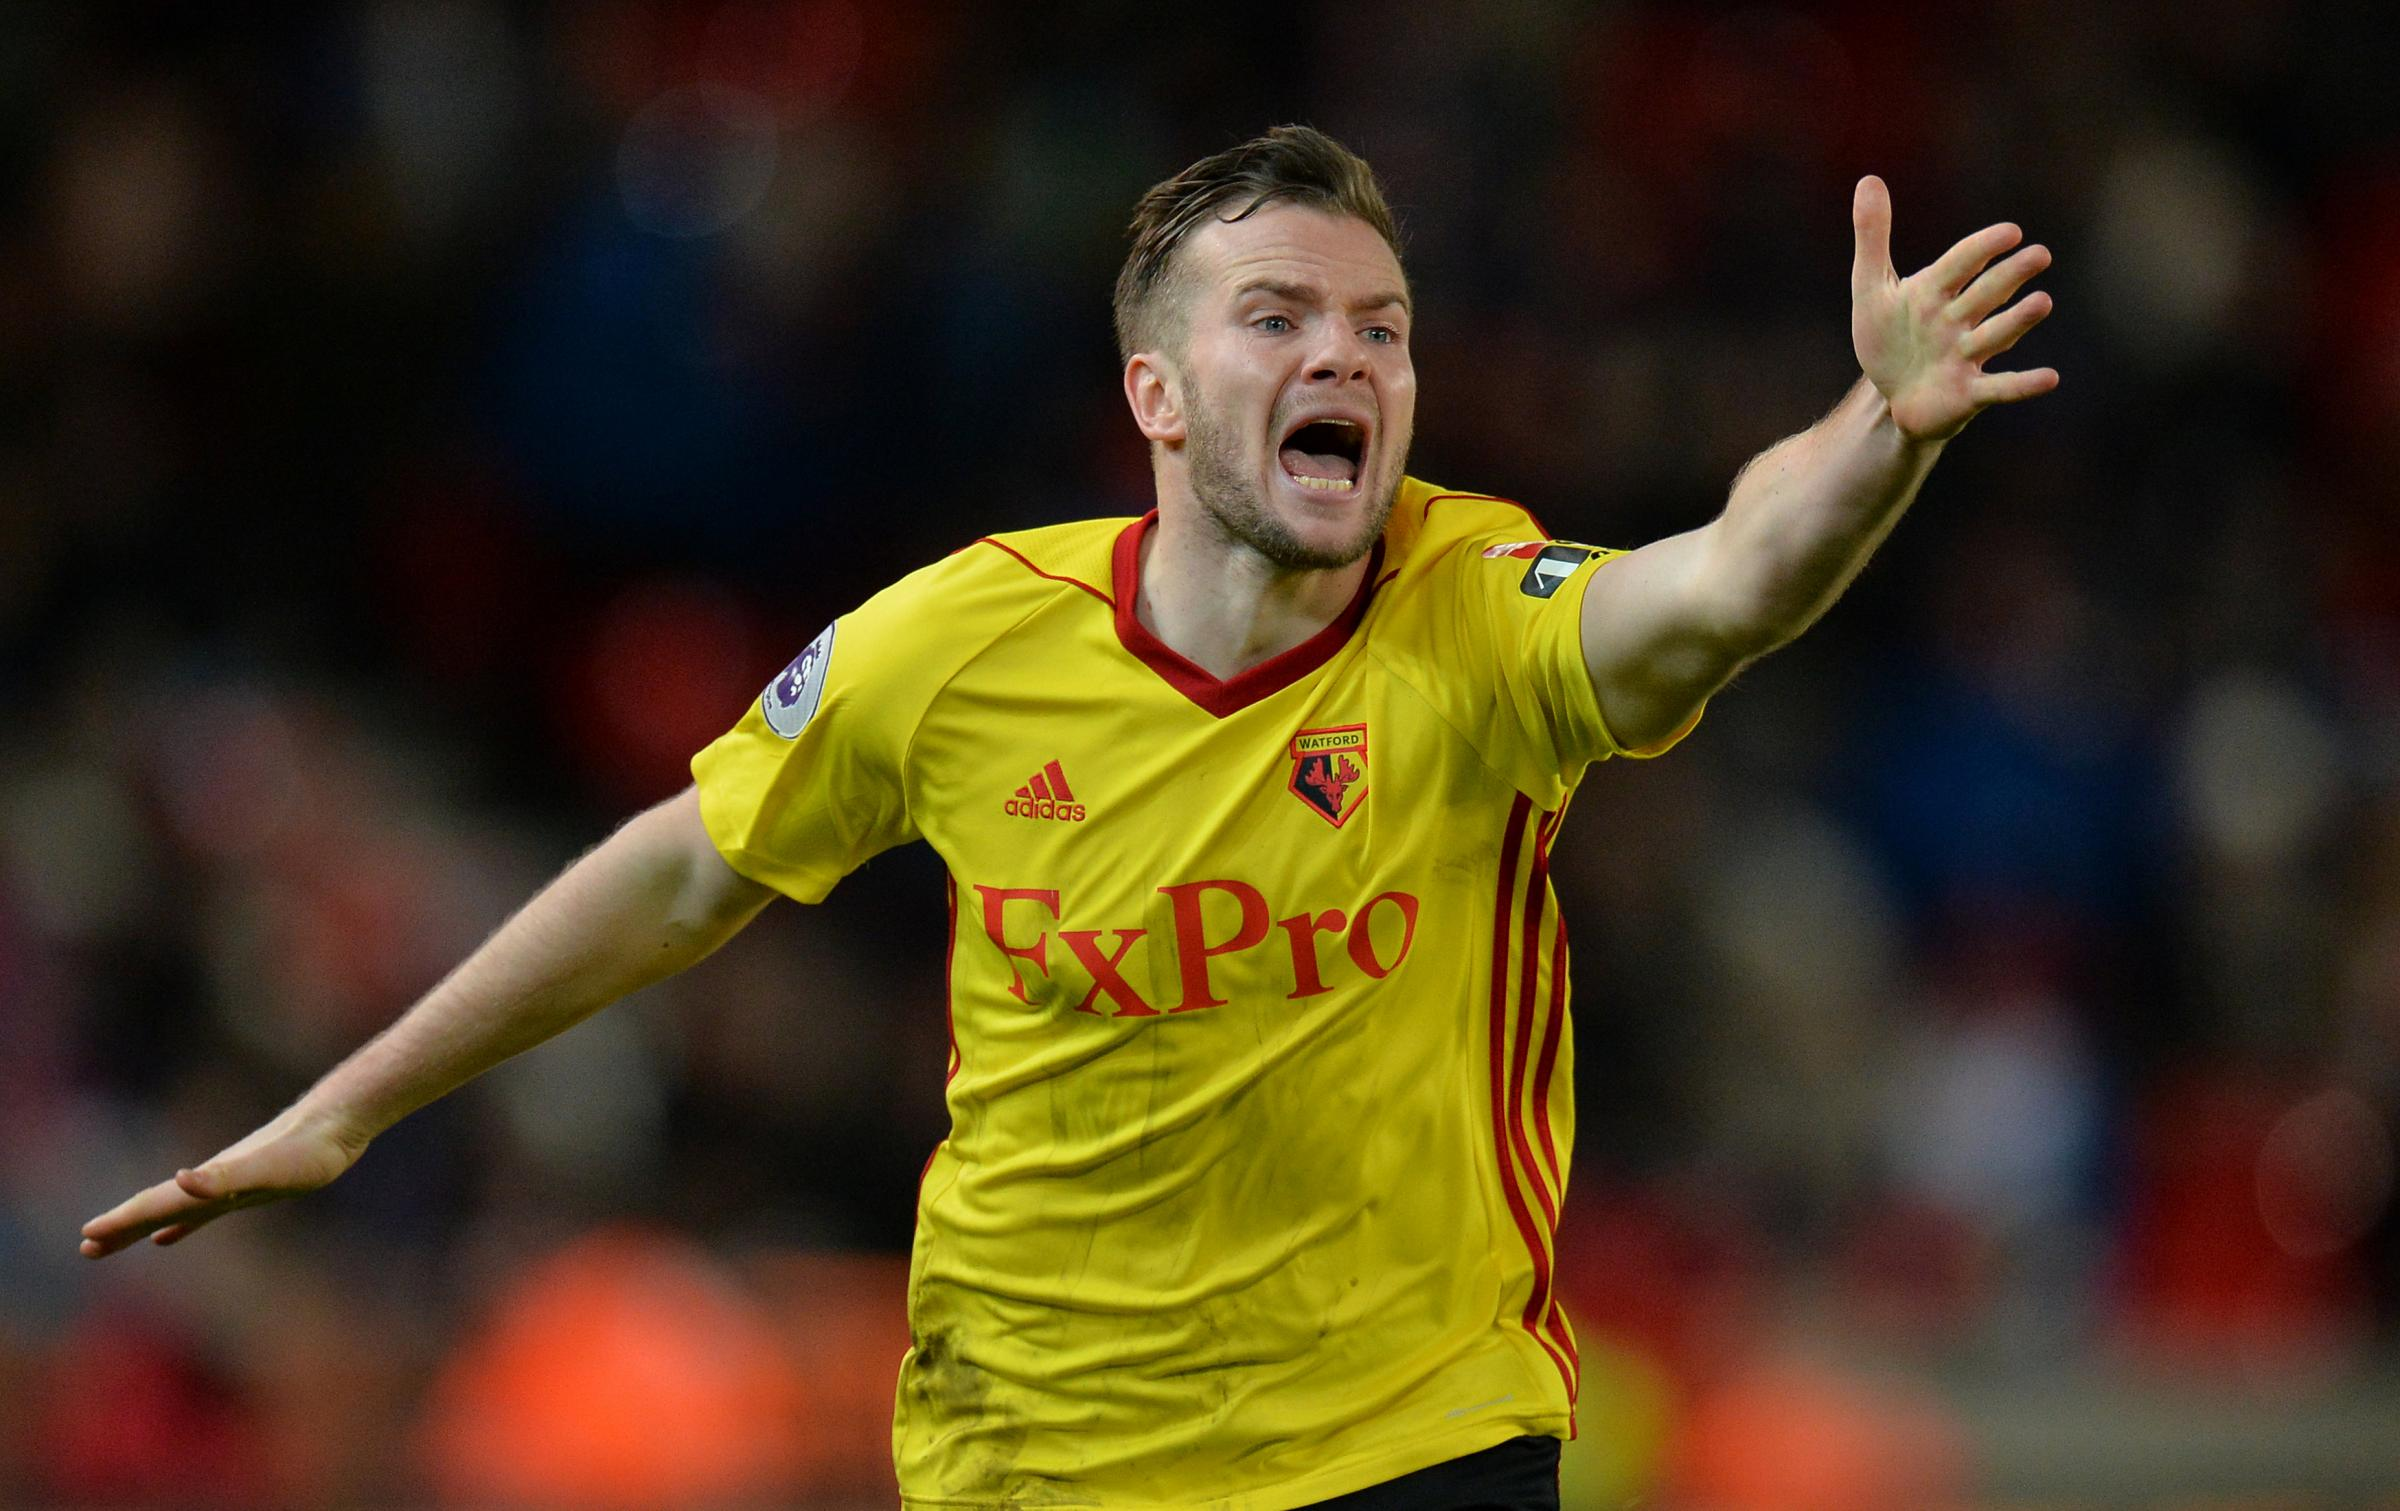 Leicester City vs Watford: Tom Cleverley may return to Hornets squad |  Watford Observer